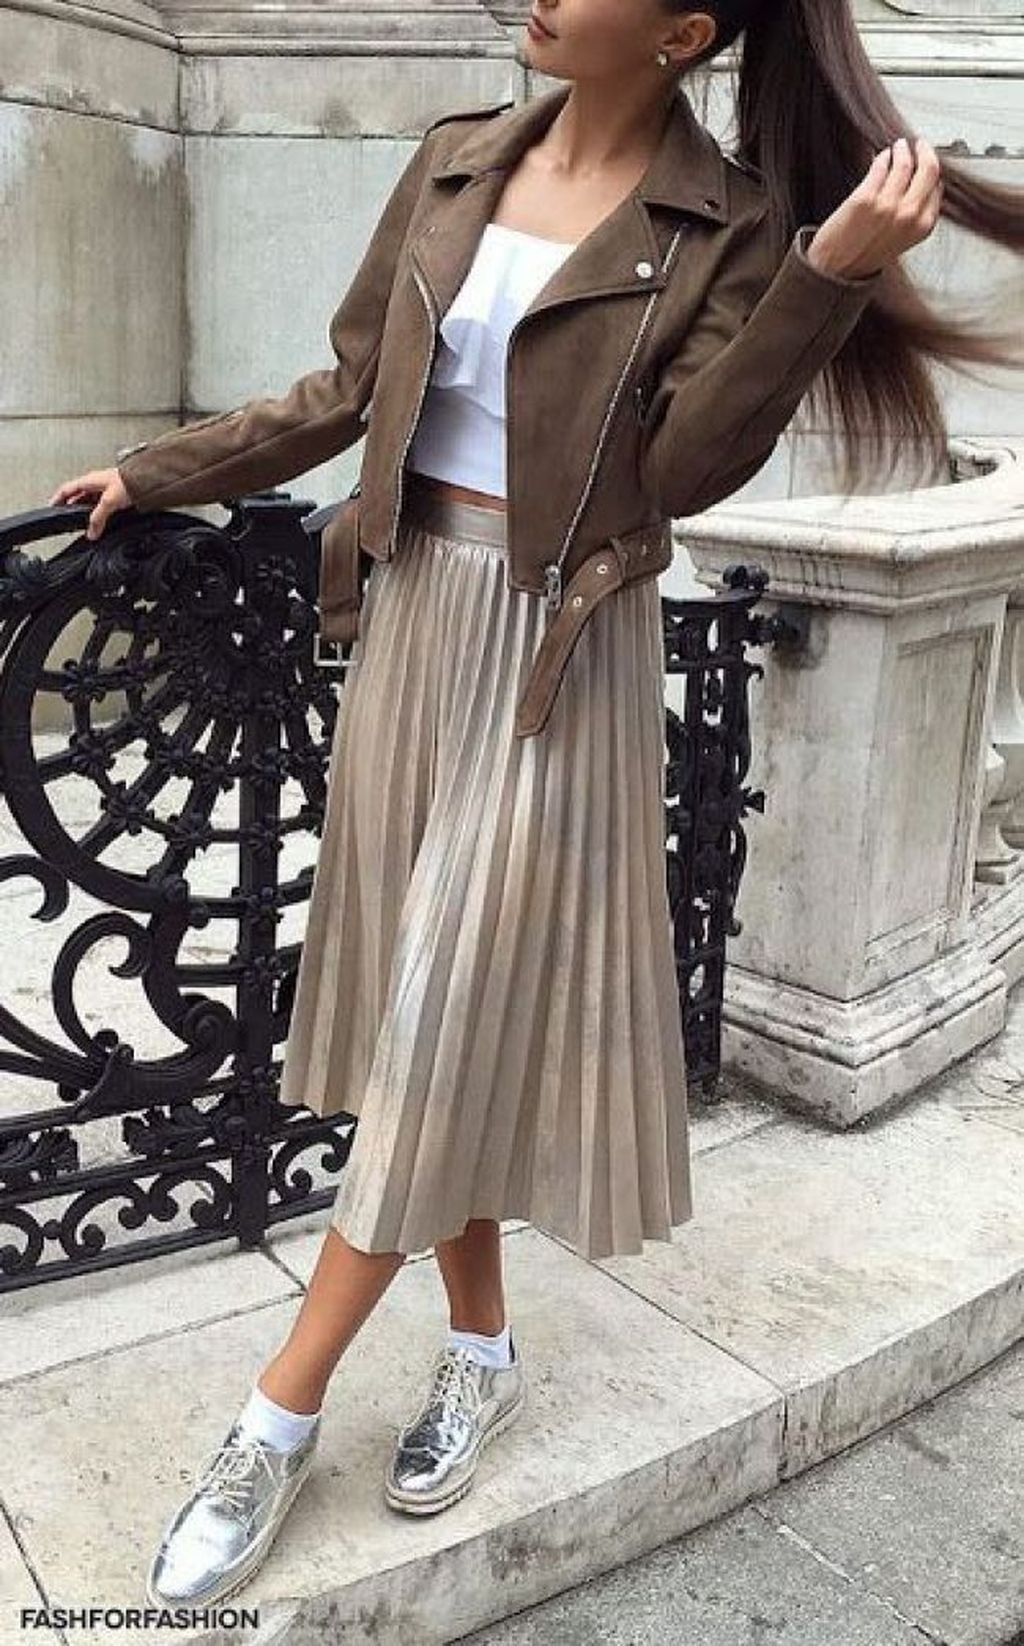 Outfit ideas pinterest outfits, modest fashion, street fashion, casual wear, trench coat